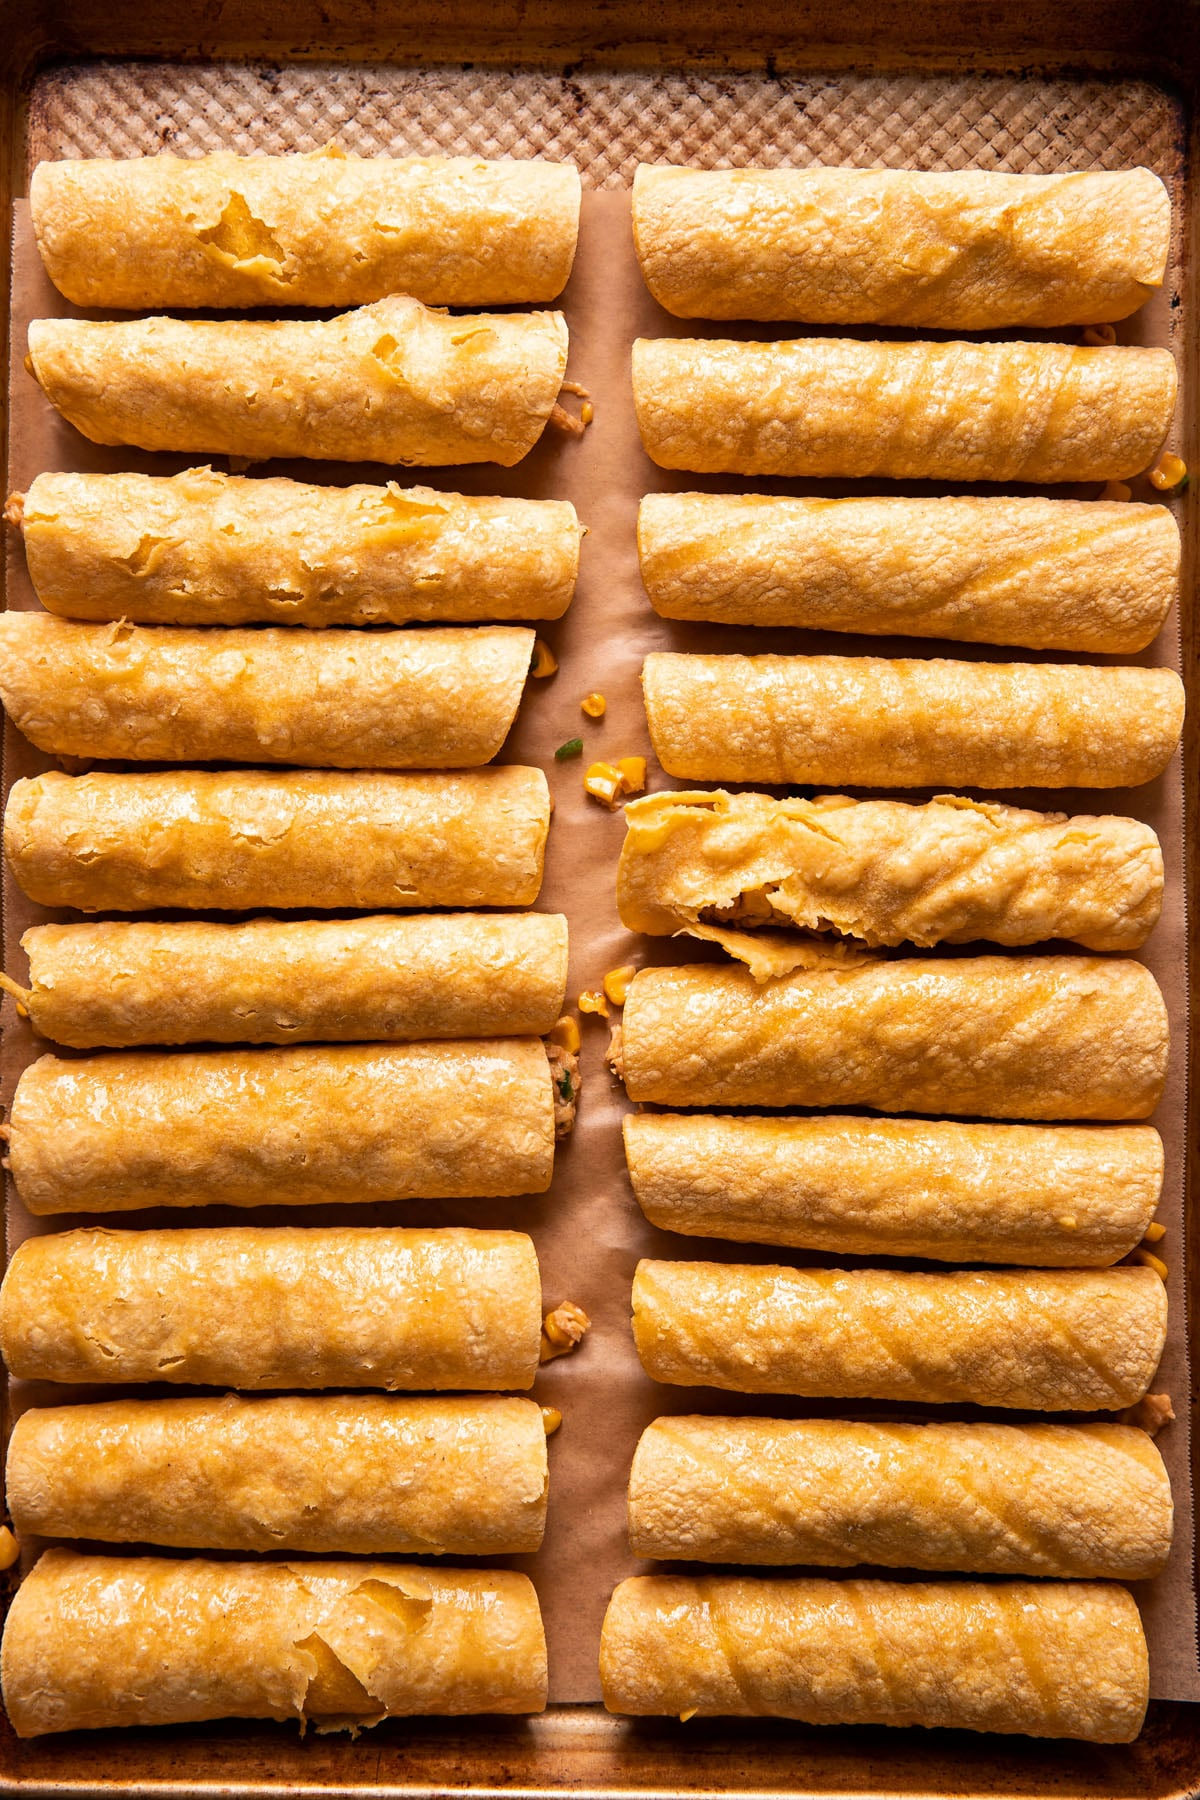 two rows of taquitos on a baking sheet before being baked